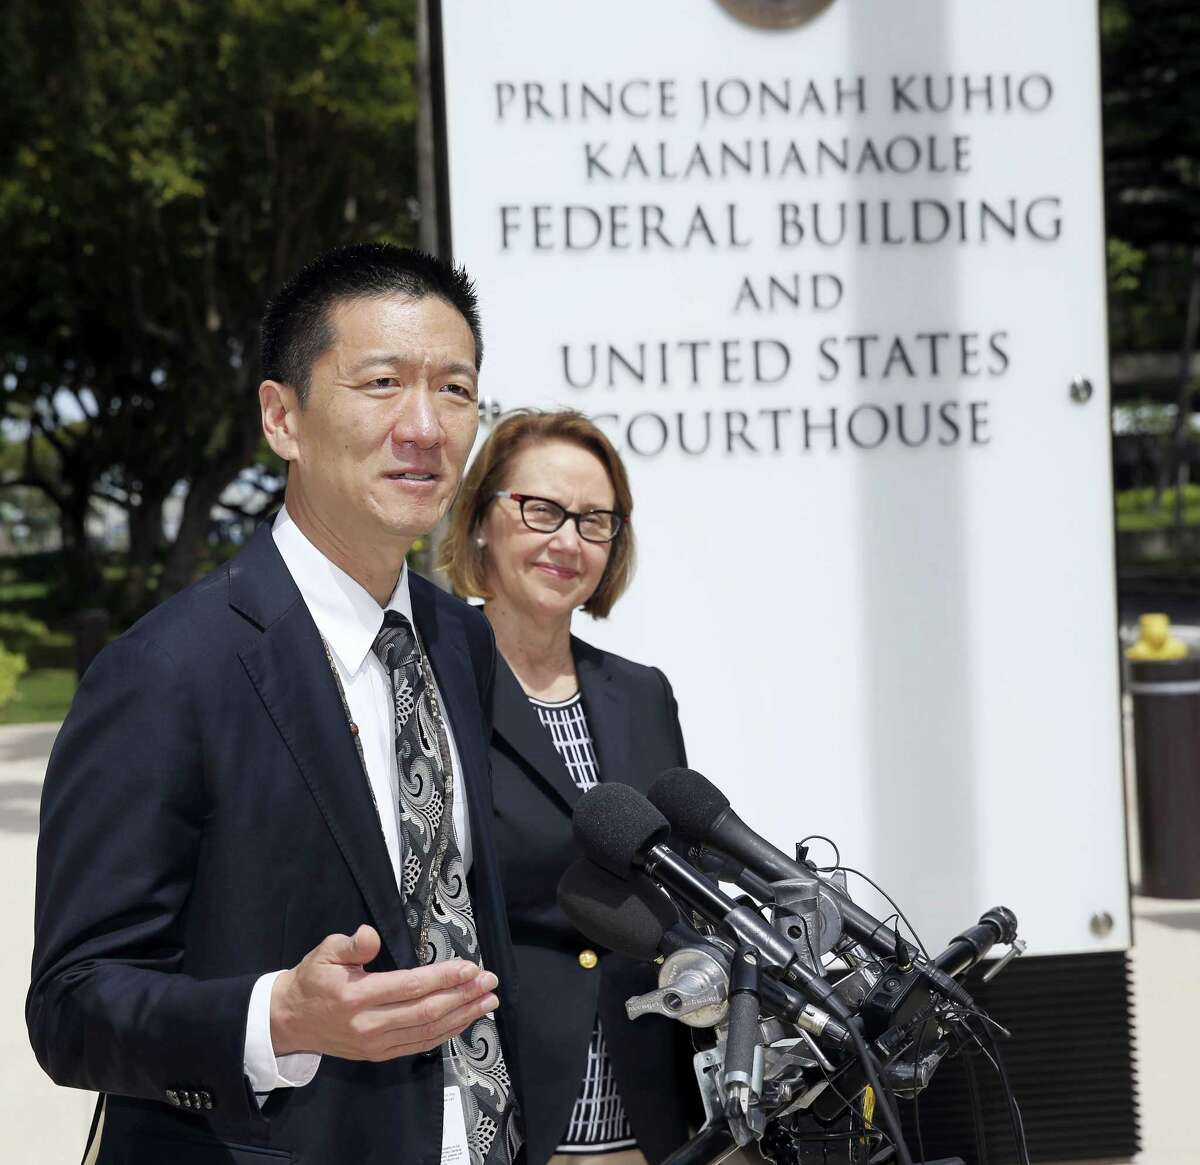 Hawaii Attorney General Douglas Chin, left, and Oregon Attorney General Ellen Rosenblum speak at a press conference outside the federal courthouse, Wednesday, March 15, 2107, in Honolulu. Hearings were scheduled Wednesday in Maryland, Washington state and Hawaii on President Donald Trump's travel ban. The lawsuit claims the ban harms Hawaii by highlighting the state's dependence on international travelers, its ethnic diversity and its welcoming reputation as the Aloha State.